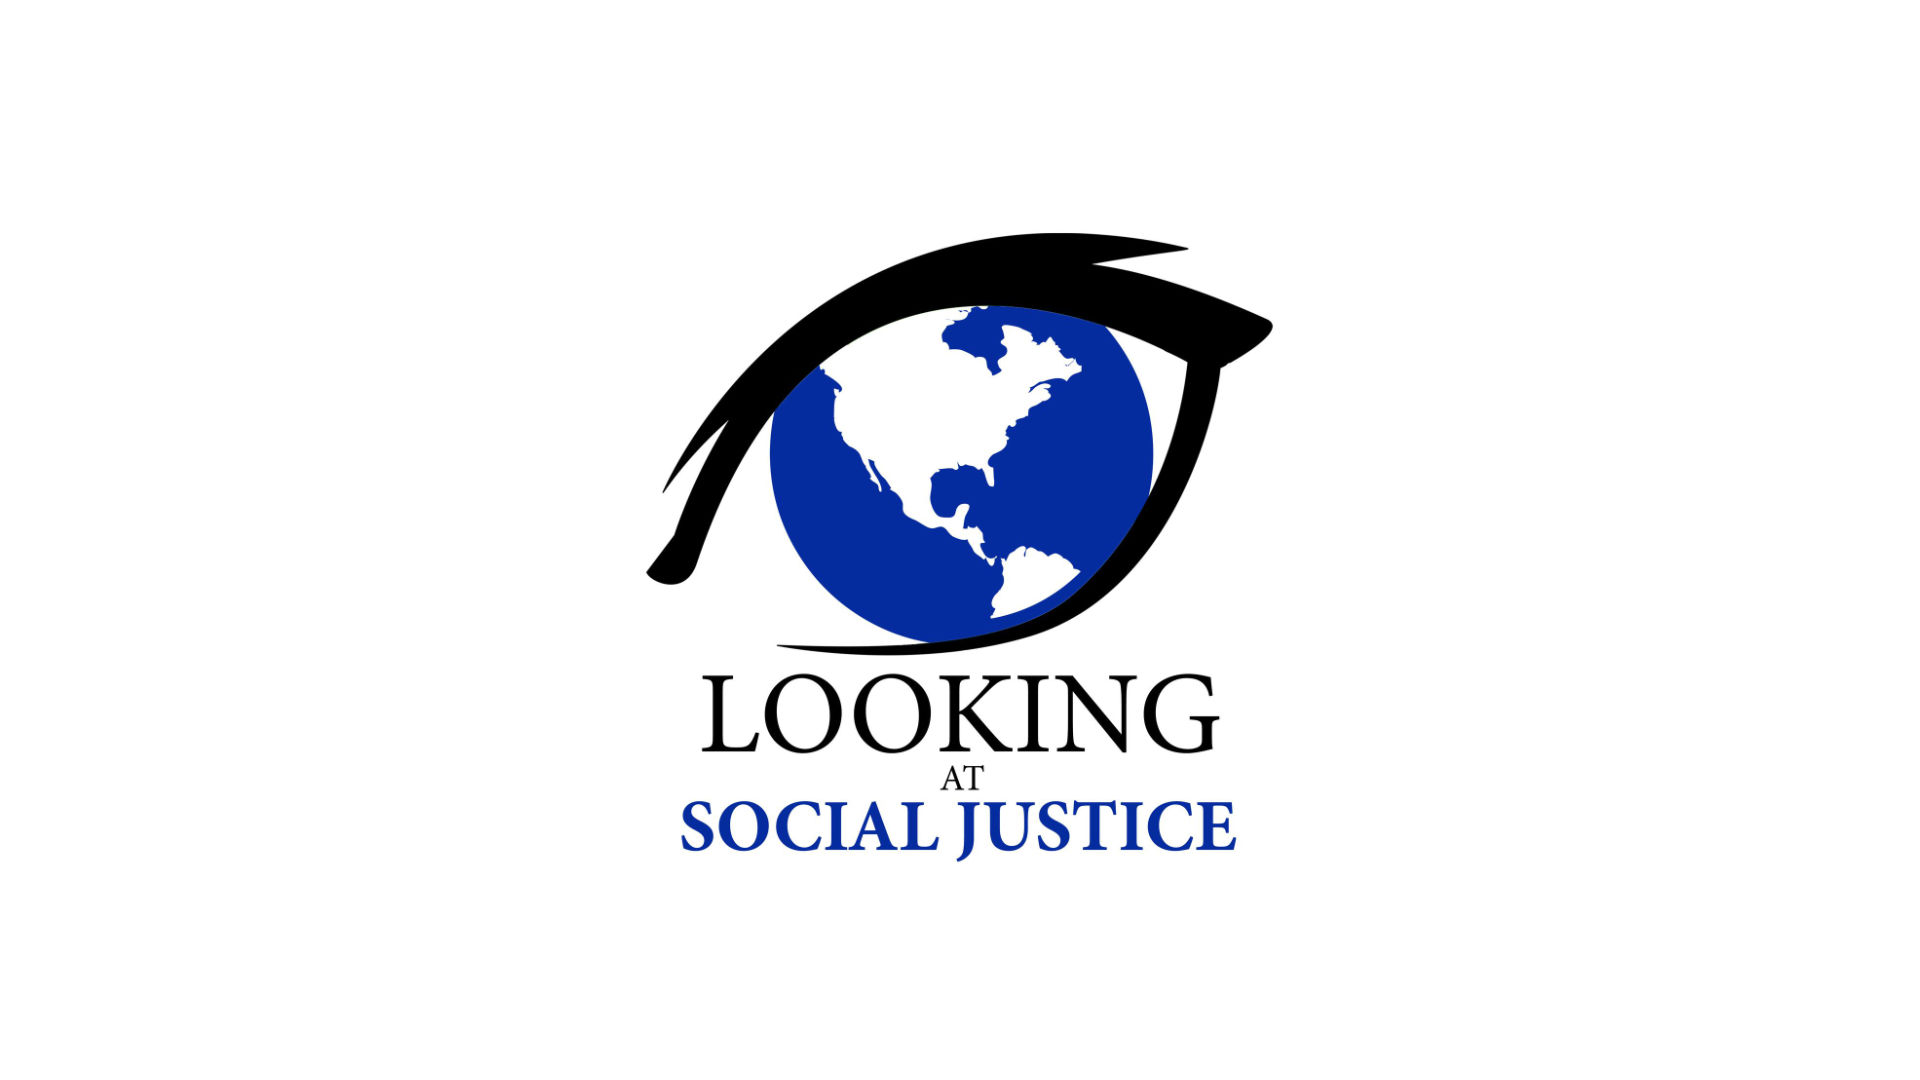 Looking At Social Justice Logo Cover Photo in Color